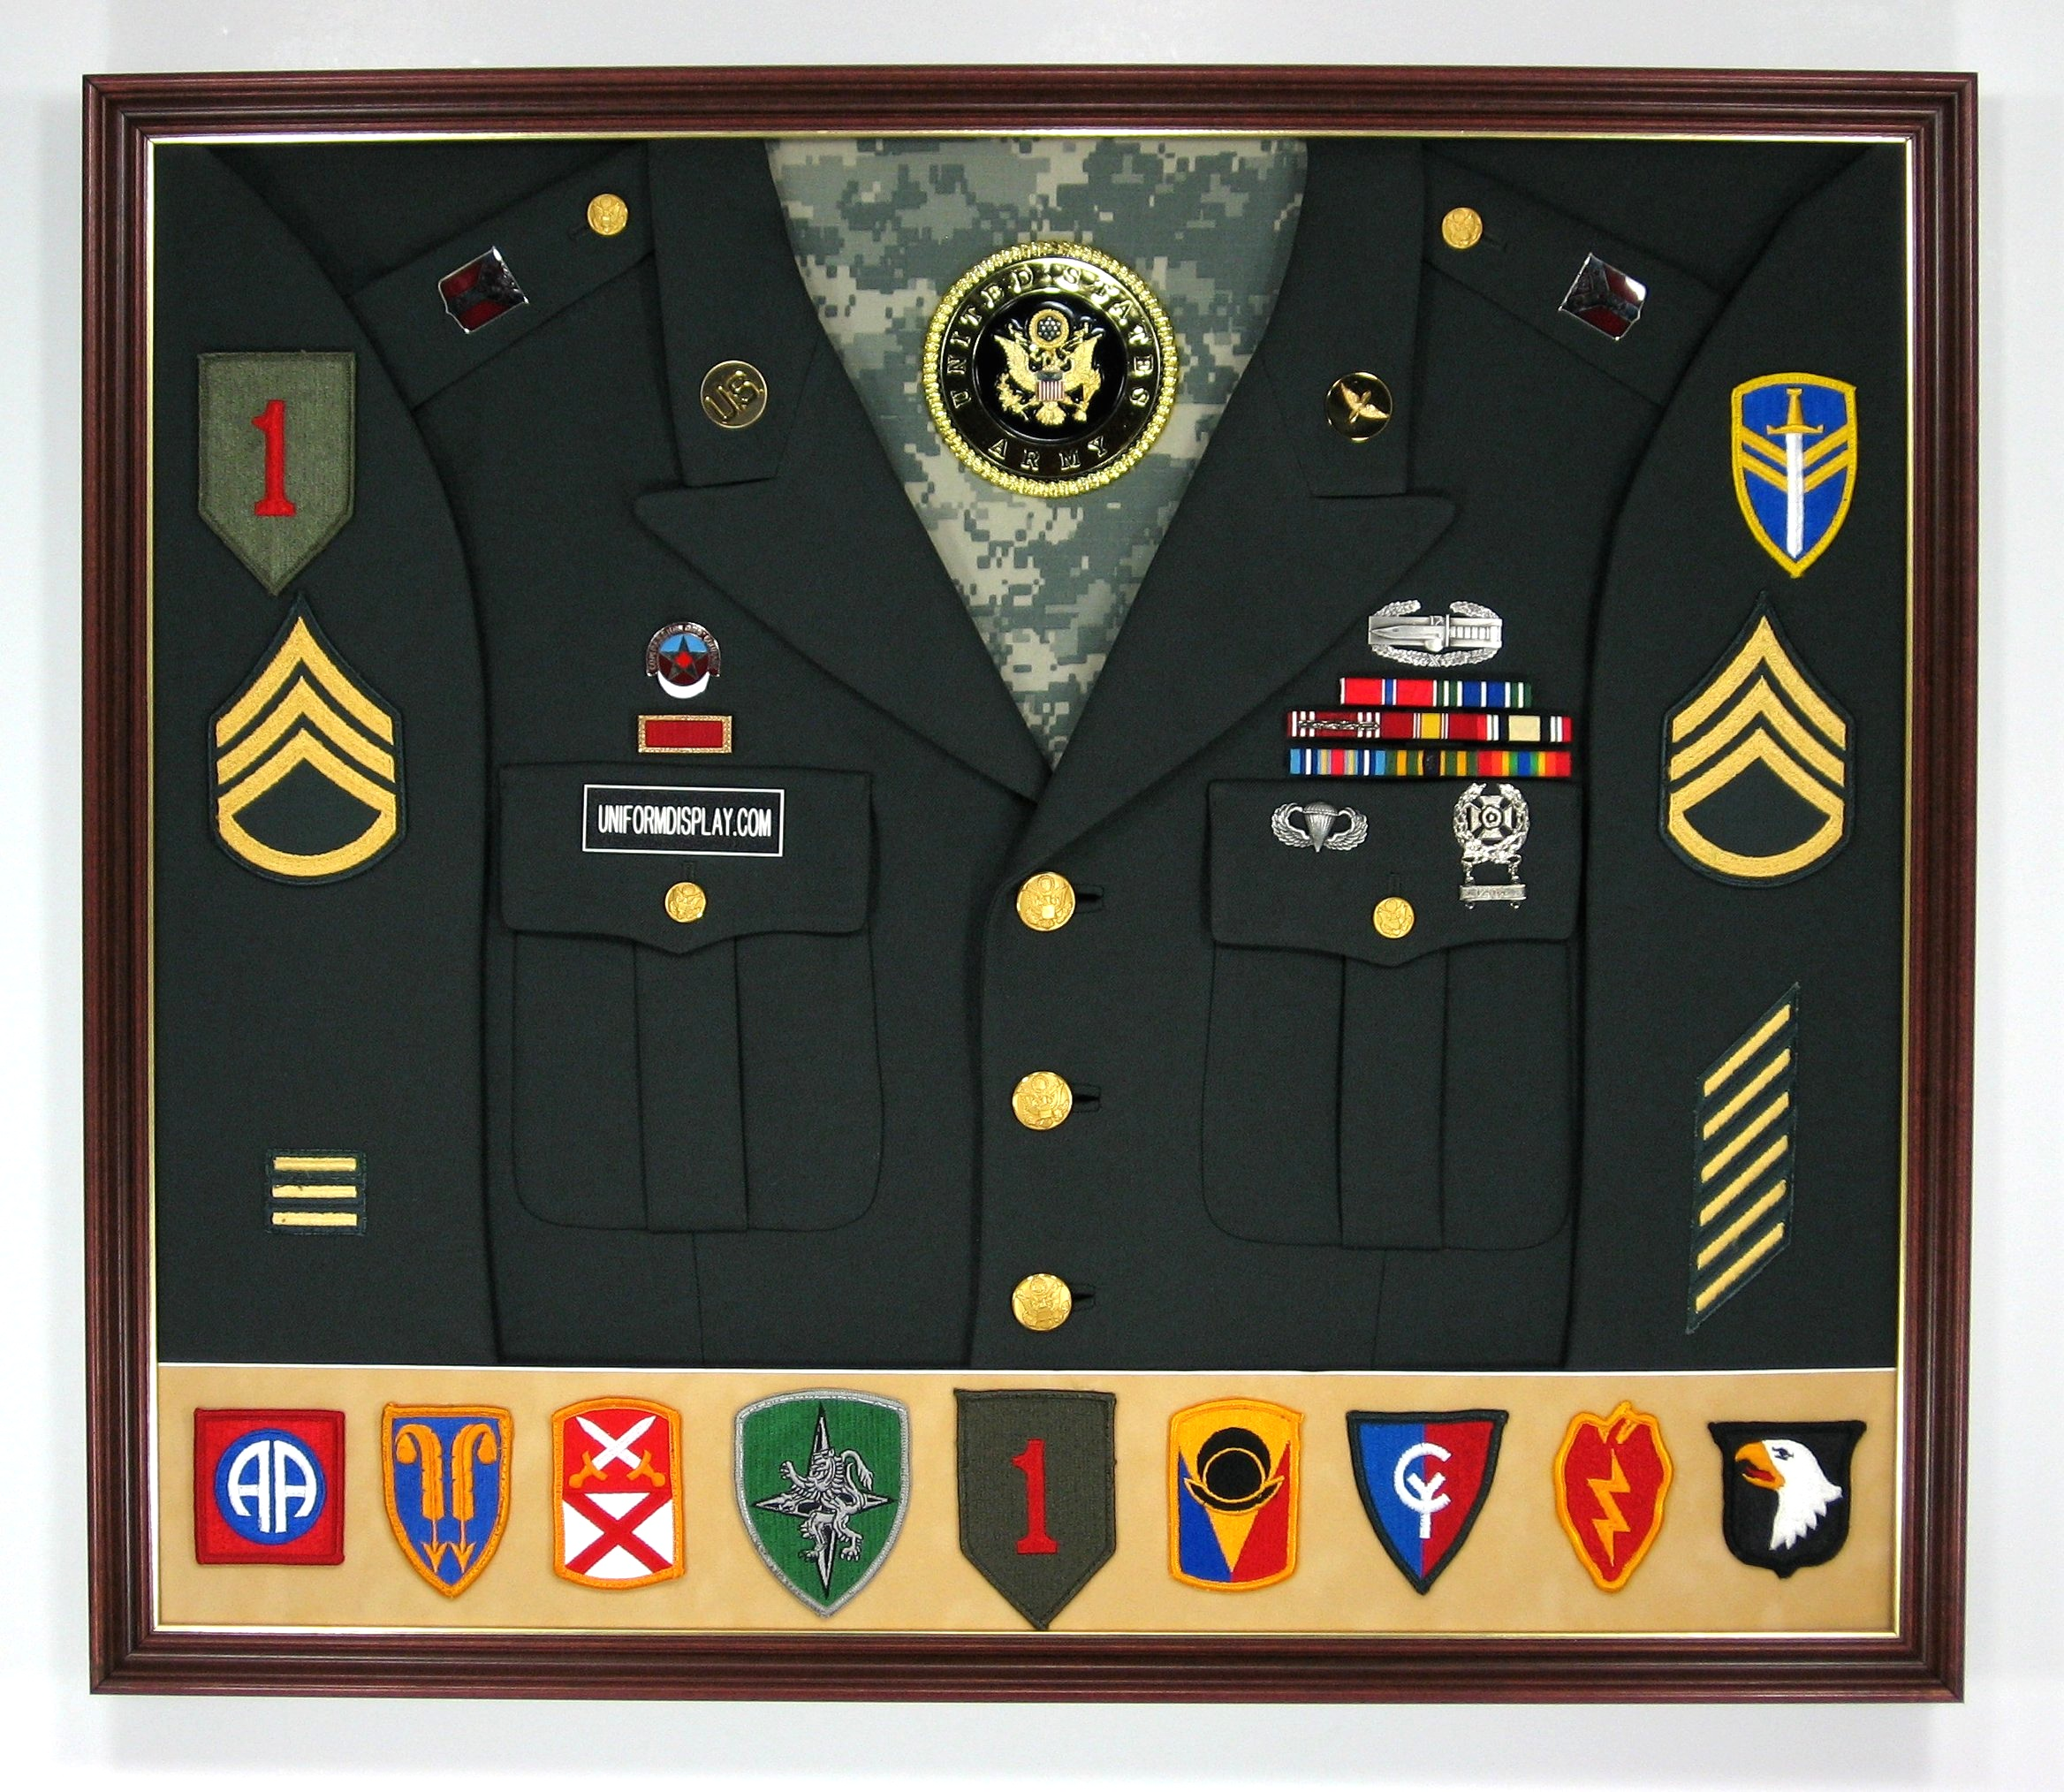 army uniform patches - DriverLayer Search Engine - photo#13